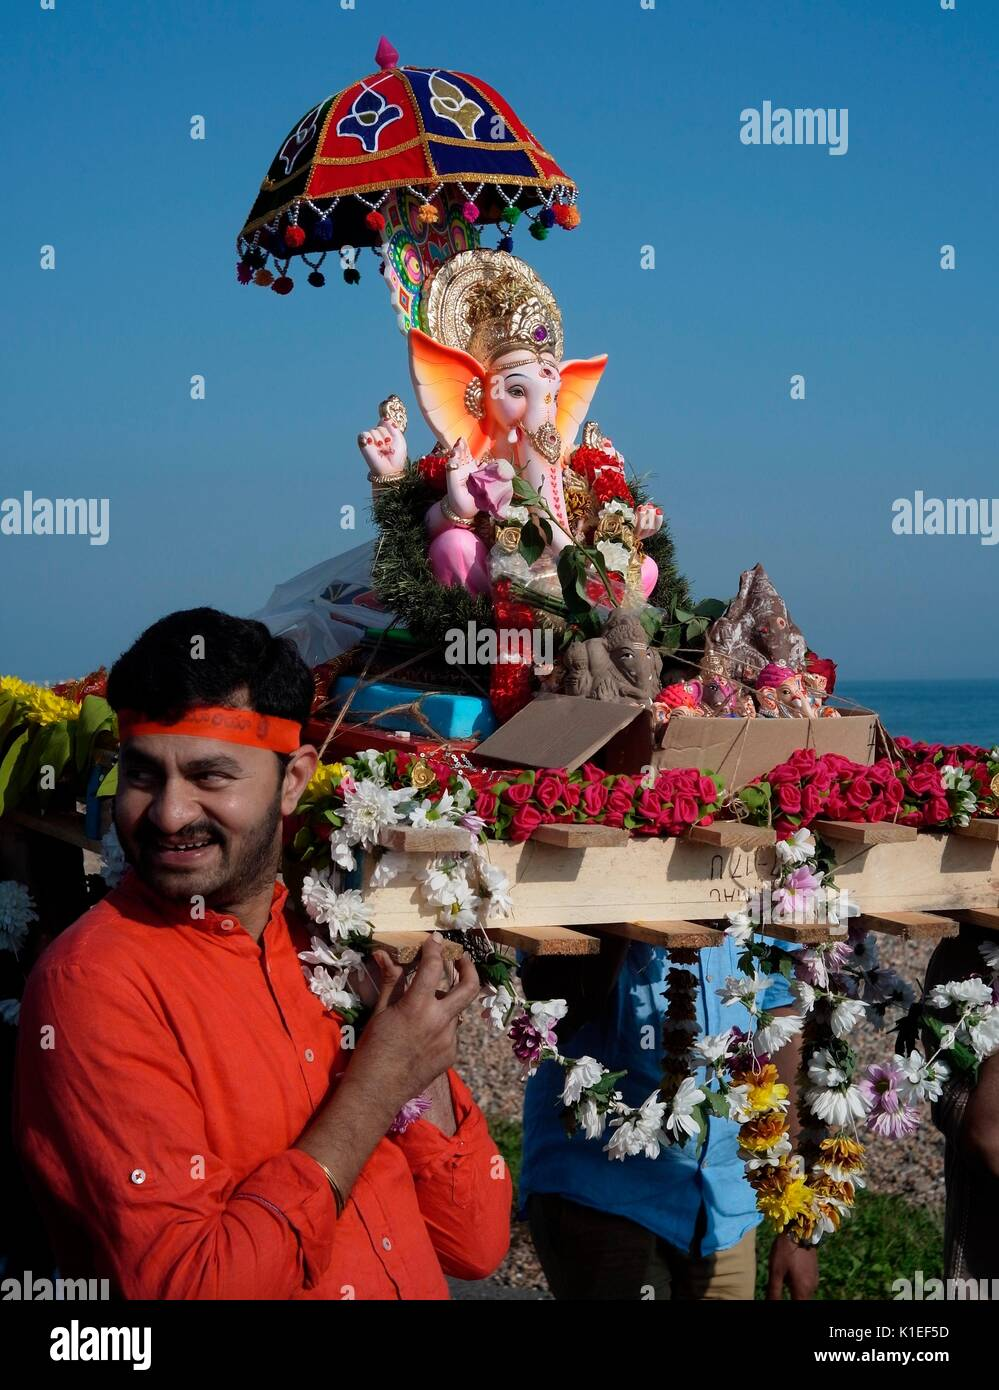 Worthing, UK. 27th Aug, 2017. Celebrating Ganesh Festival in the U.K. - Members of the local Hindu community carry a model of Lord Ganesh along the beach front to the English Channel. Also known as Ganesh Chaturthi, the important festival celebrates the elephant-headed son of Lord shiva and Goddess Parvati, a symbol of wisdon, prosperity and good fortune. The model is made of plaster of paris and dissolves in sea-water. Credit: Photo: Jonathan Eastland/Ajax/Alamy Live News - Stock Image